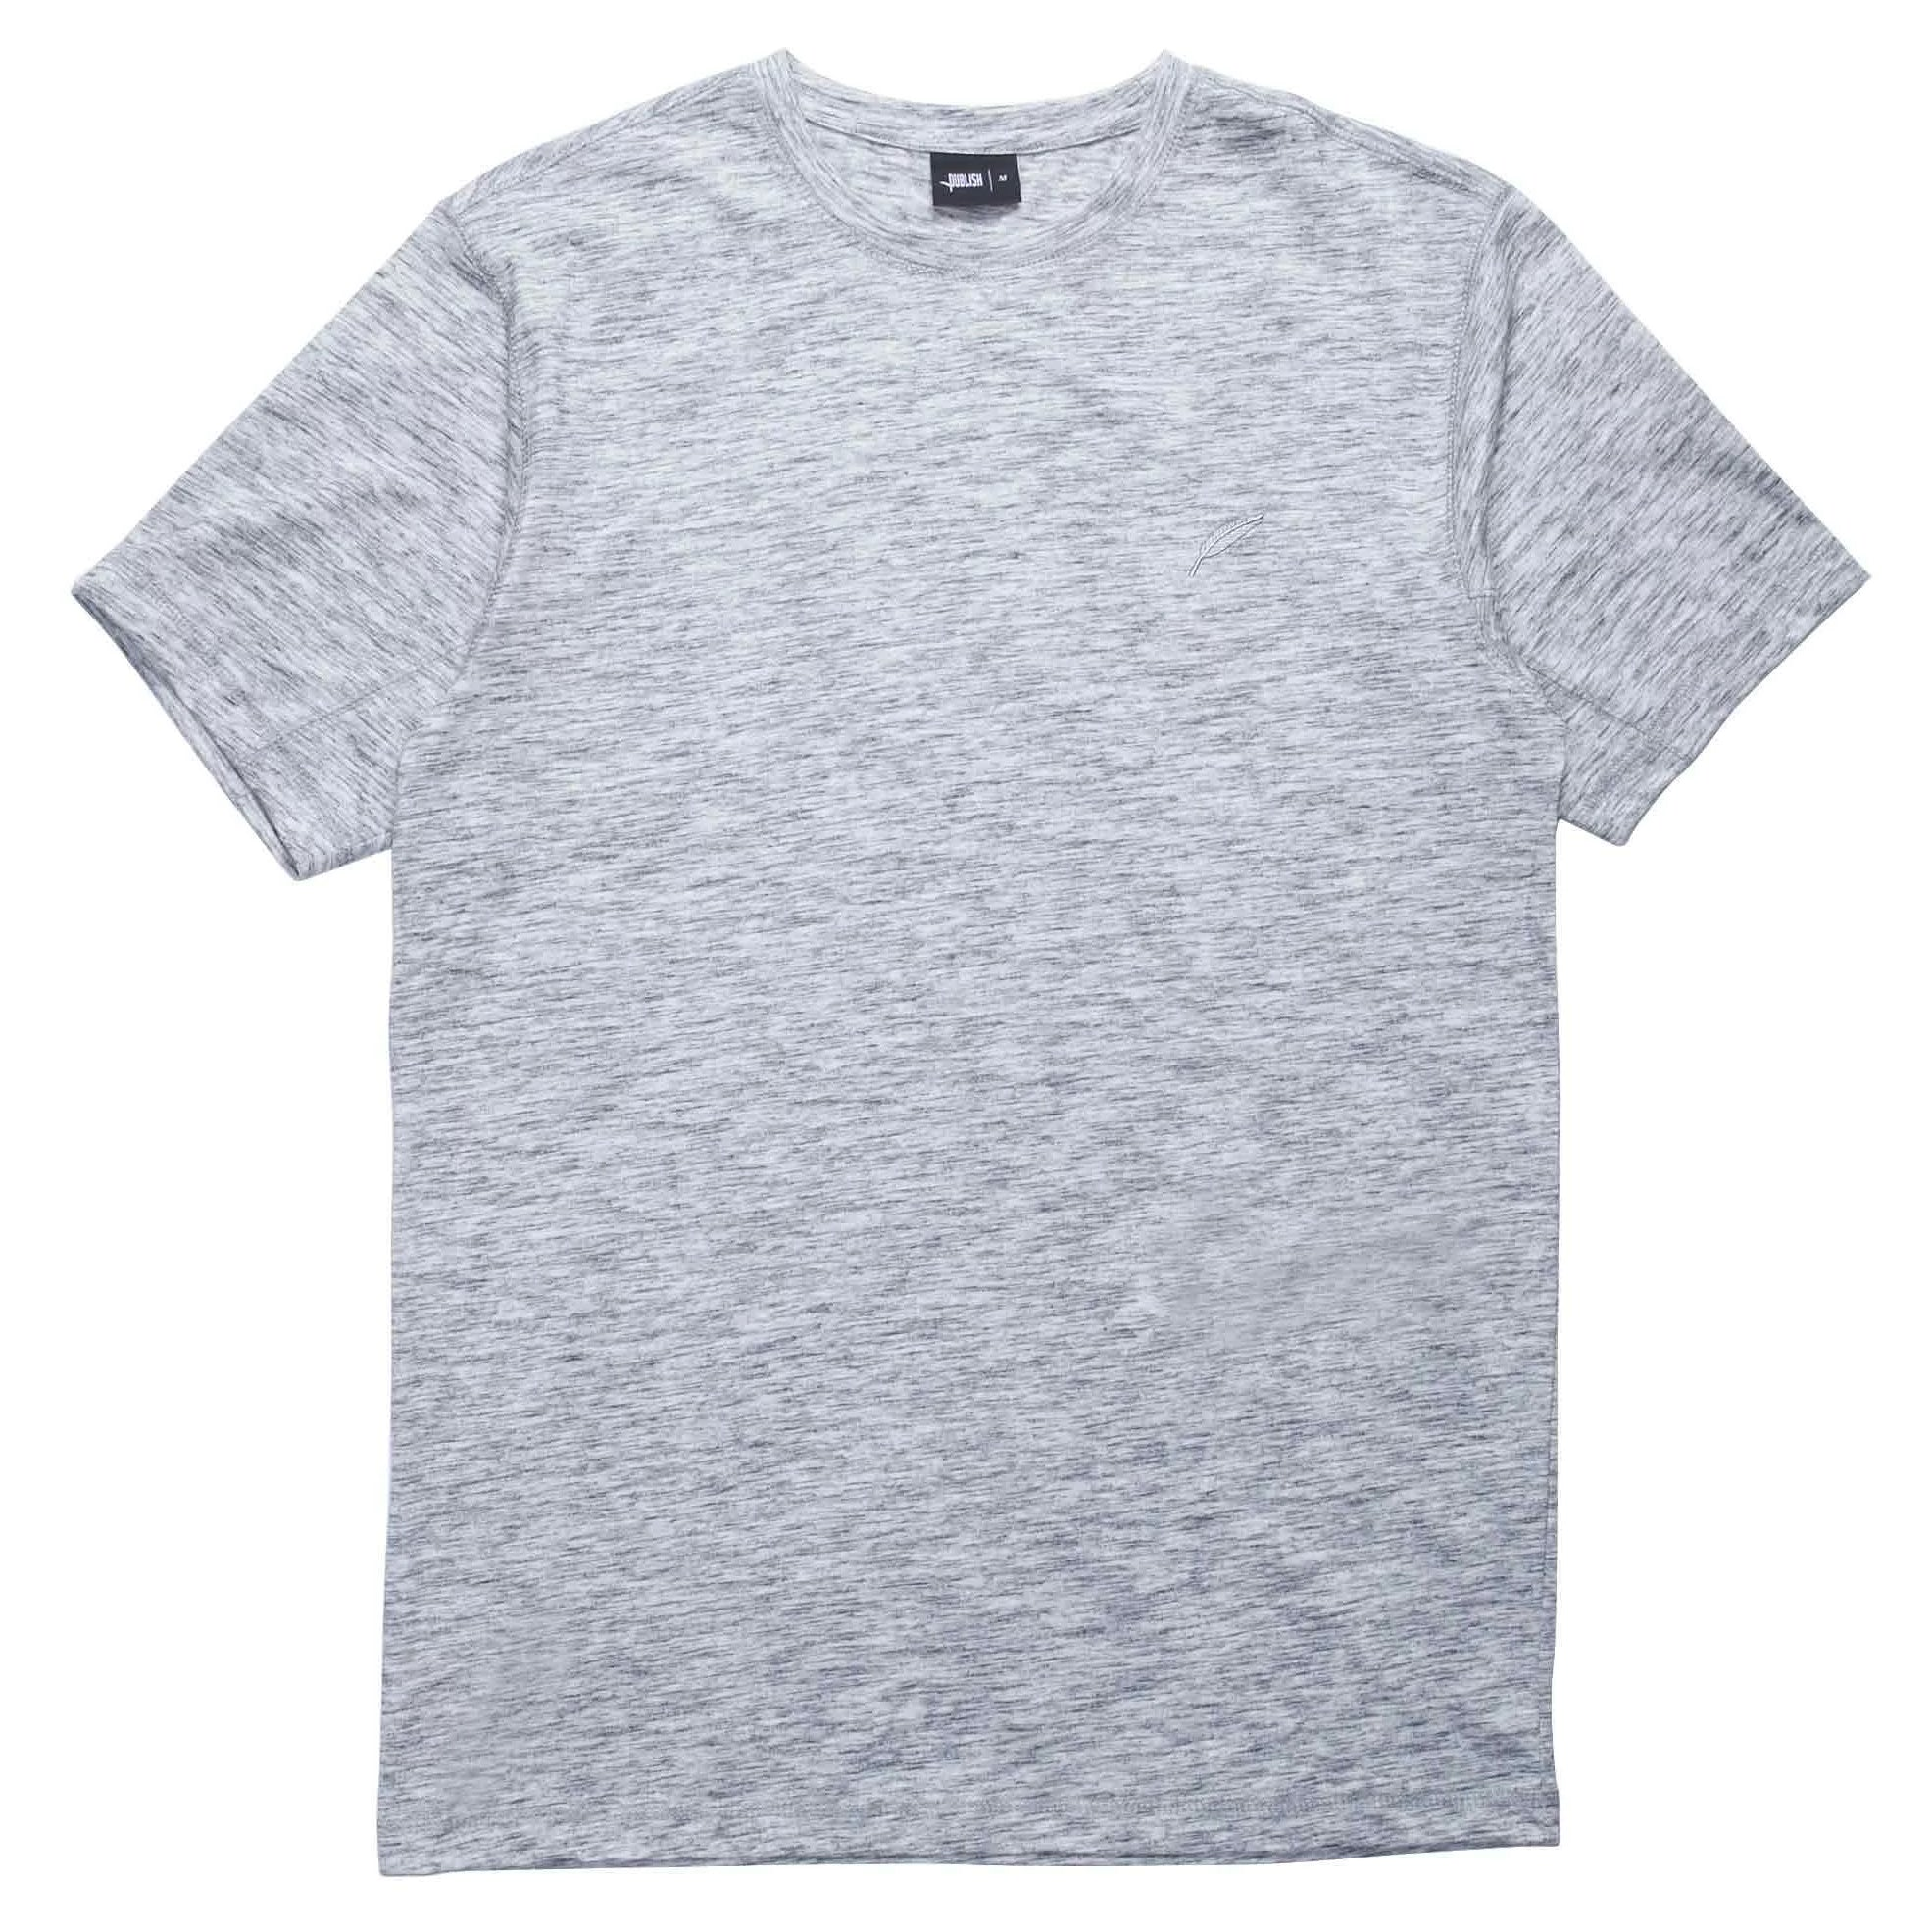 Index S/S Reverse Tee (Heather)